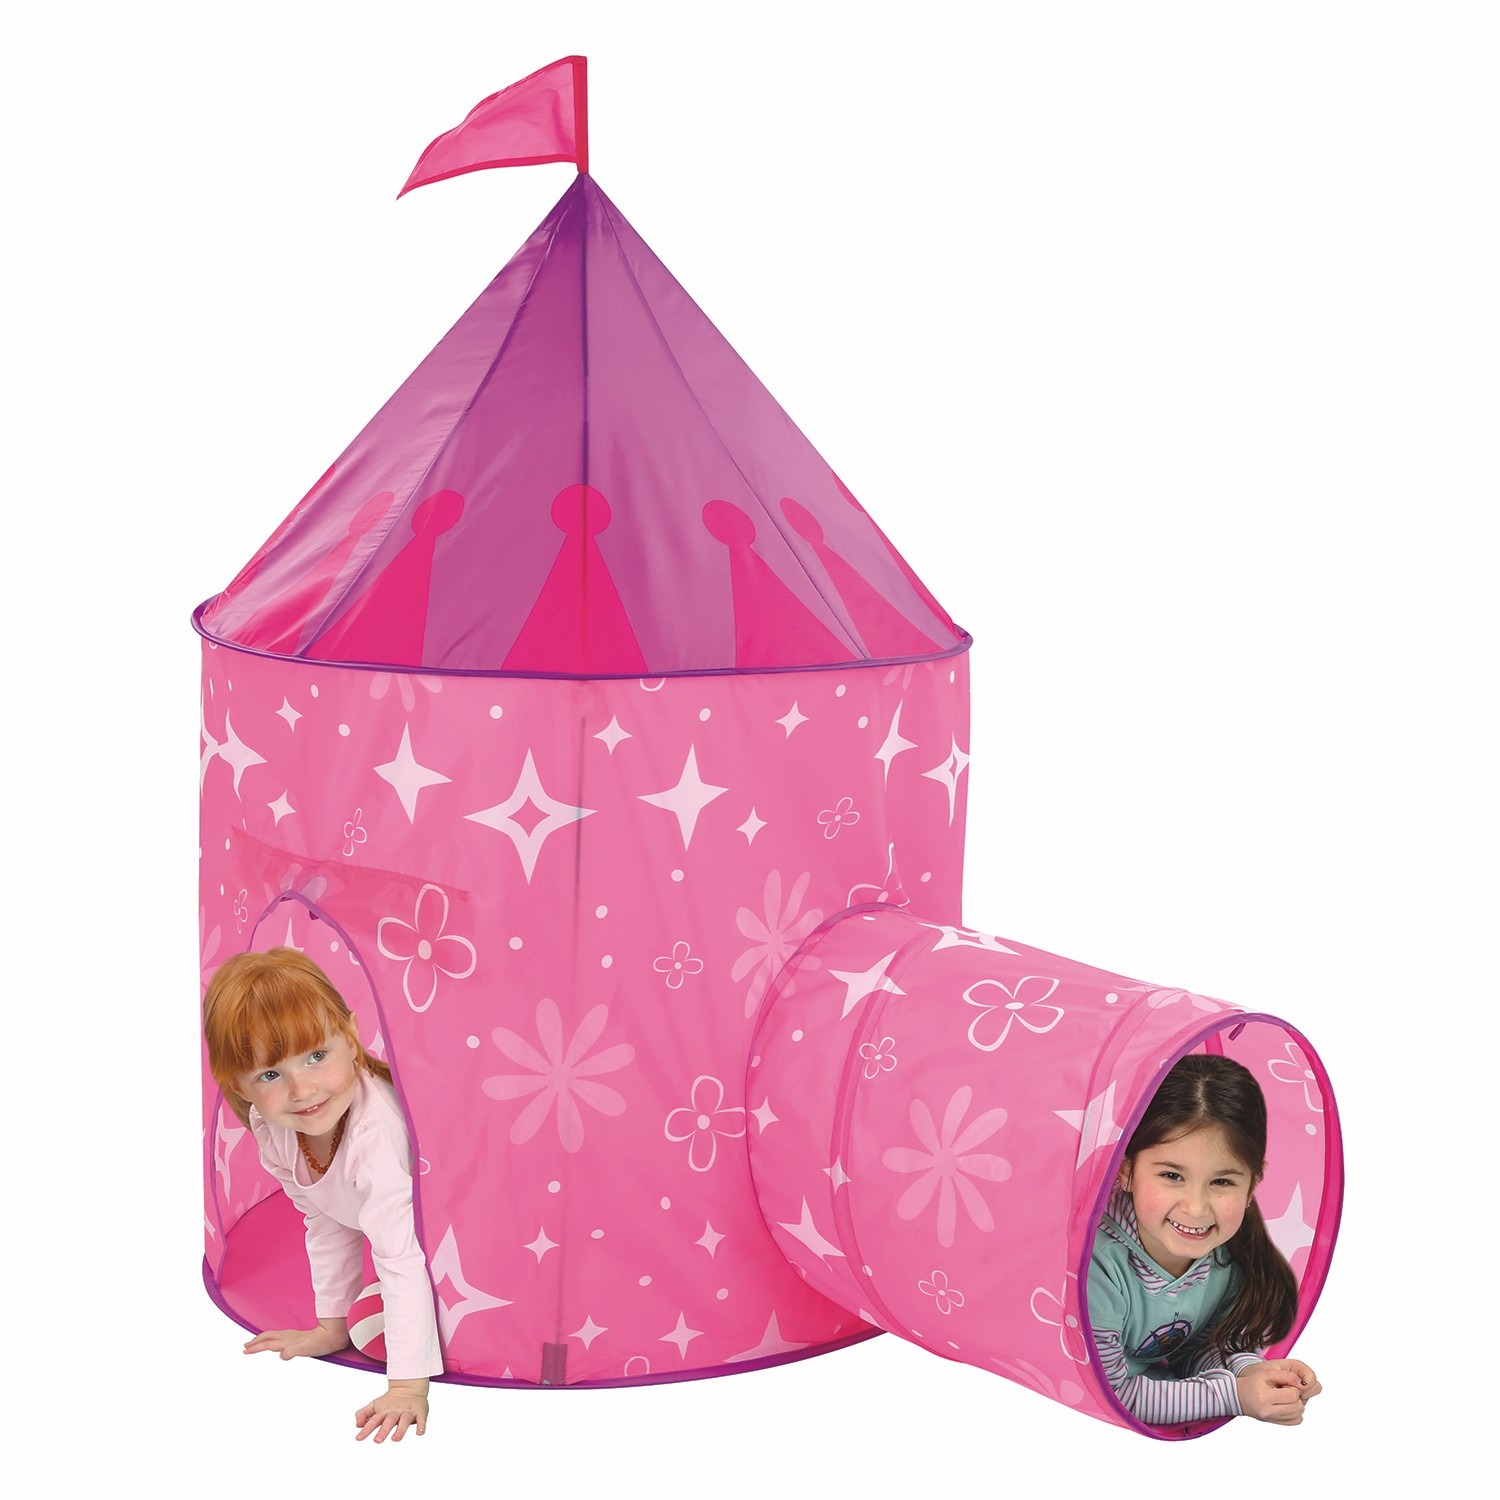 new style 6ee4a 43b45 20+ Disney Princess Tent Walmart Pictures and Ideas on Weric